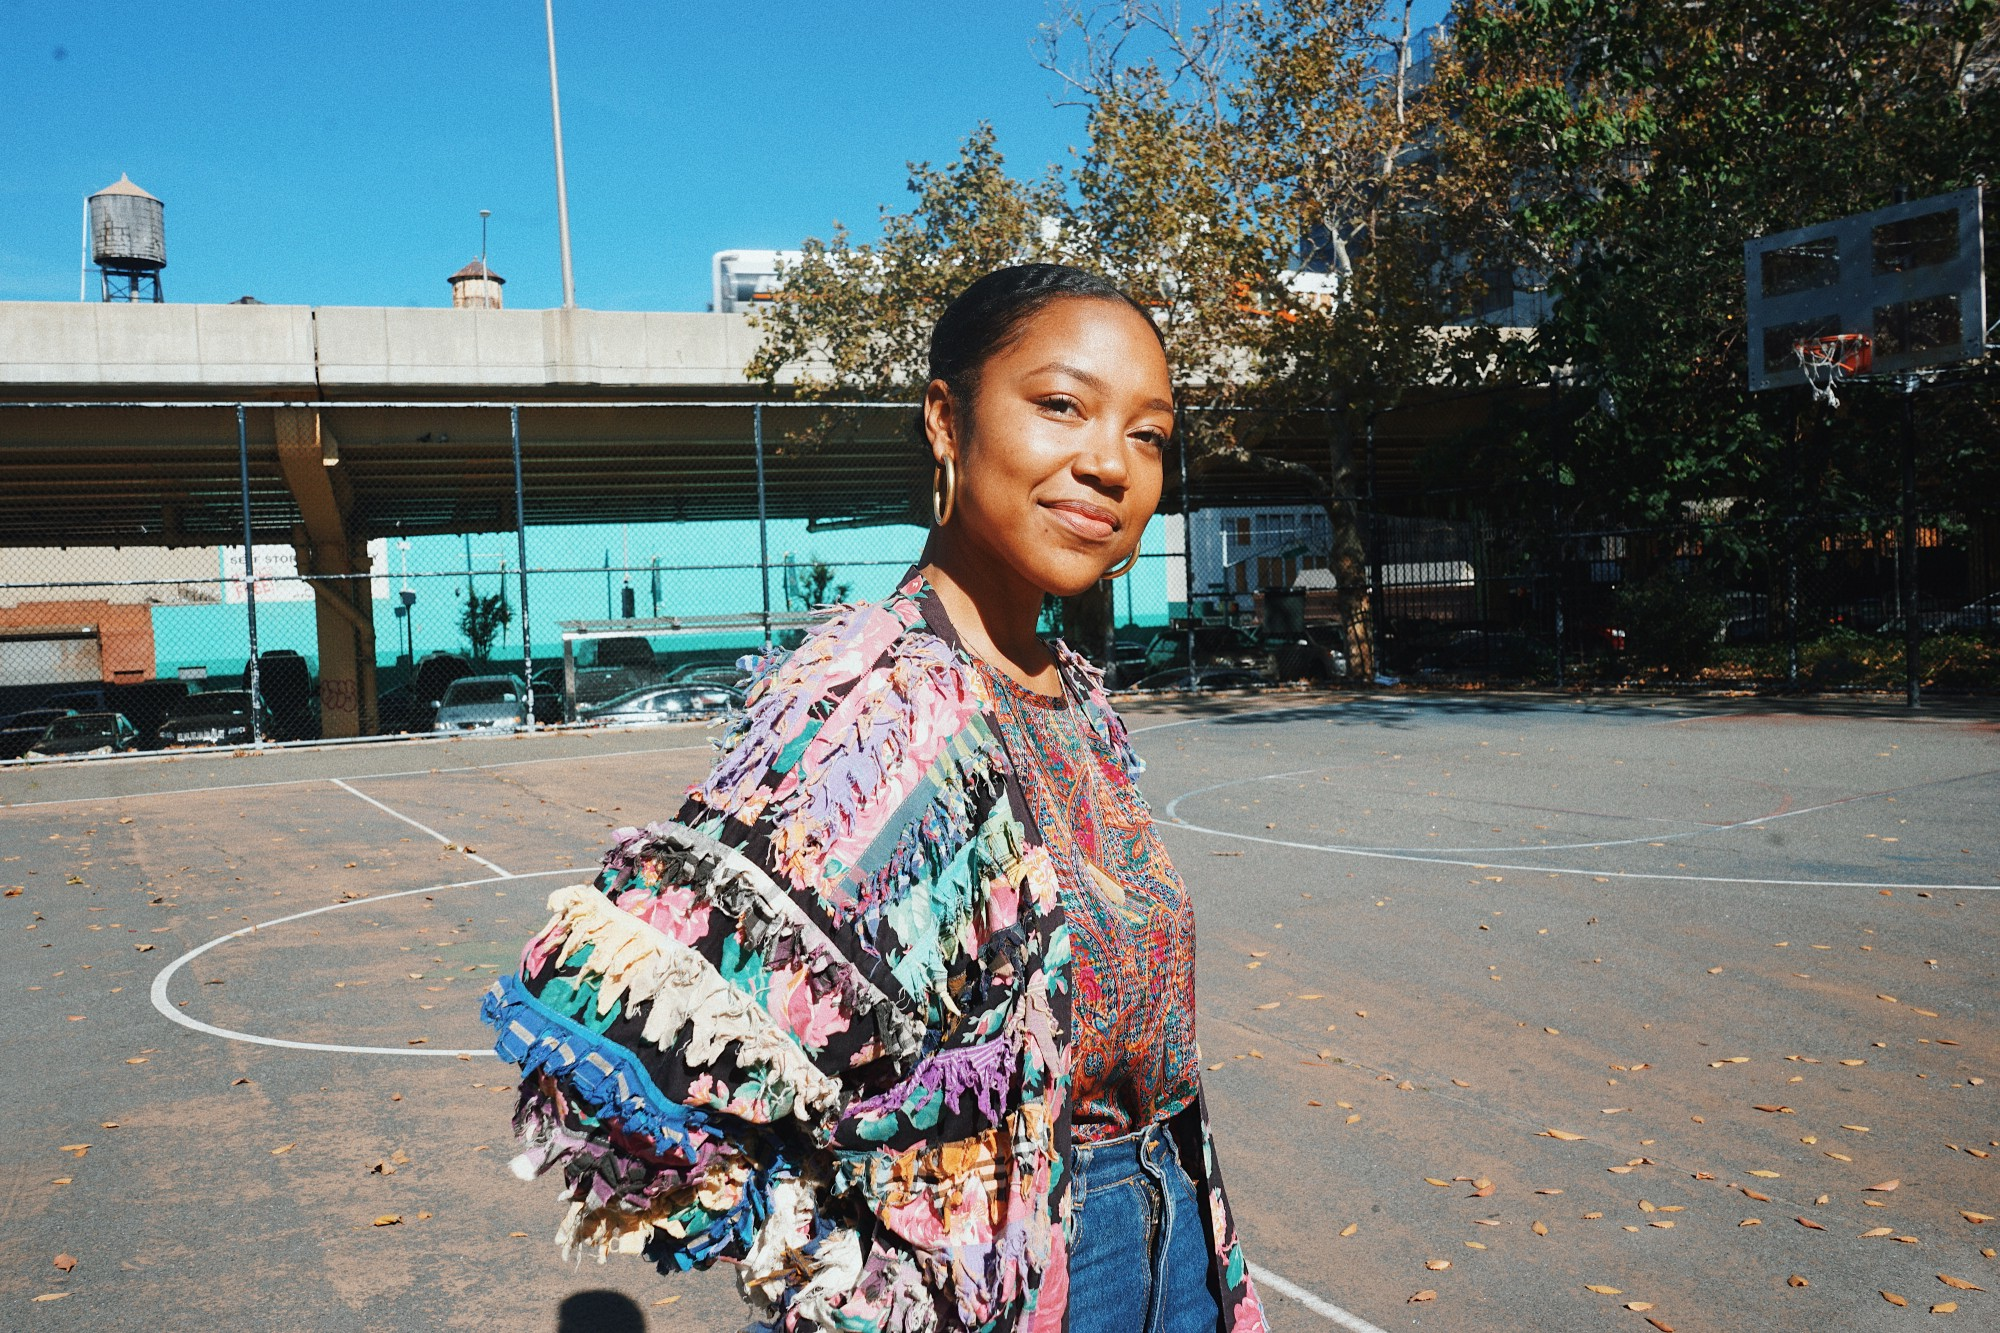 A Black woman smiles at the camera. She is standing outside in the sun on a basketball court.